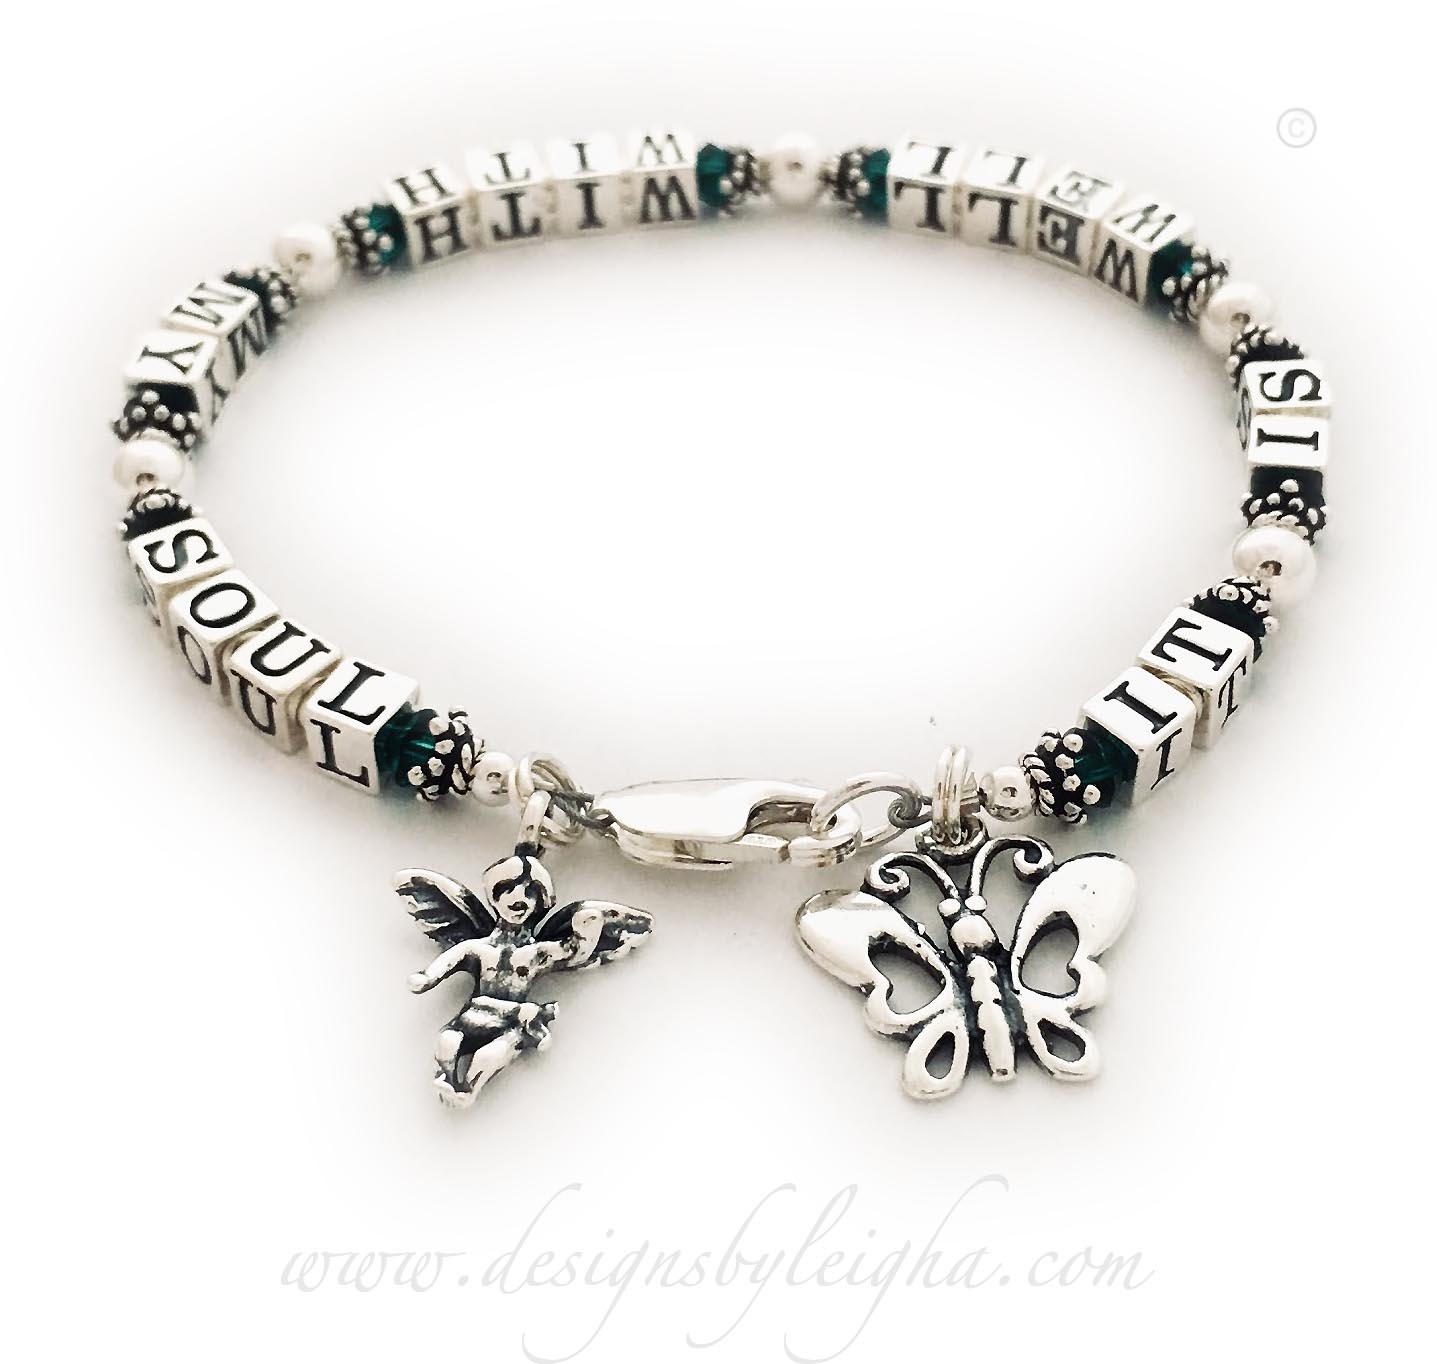 IT IS WELL WITH MY SOUL Bracelet  Shown with Emerald or May Birthstone Crystals and a lobster claw clasp. *They added 2 charms to their bracelet order: Angel with Wings charm and an Ornate Butterfly charm.